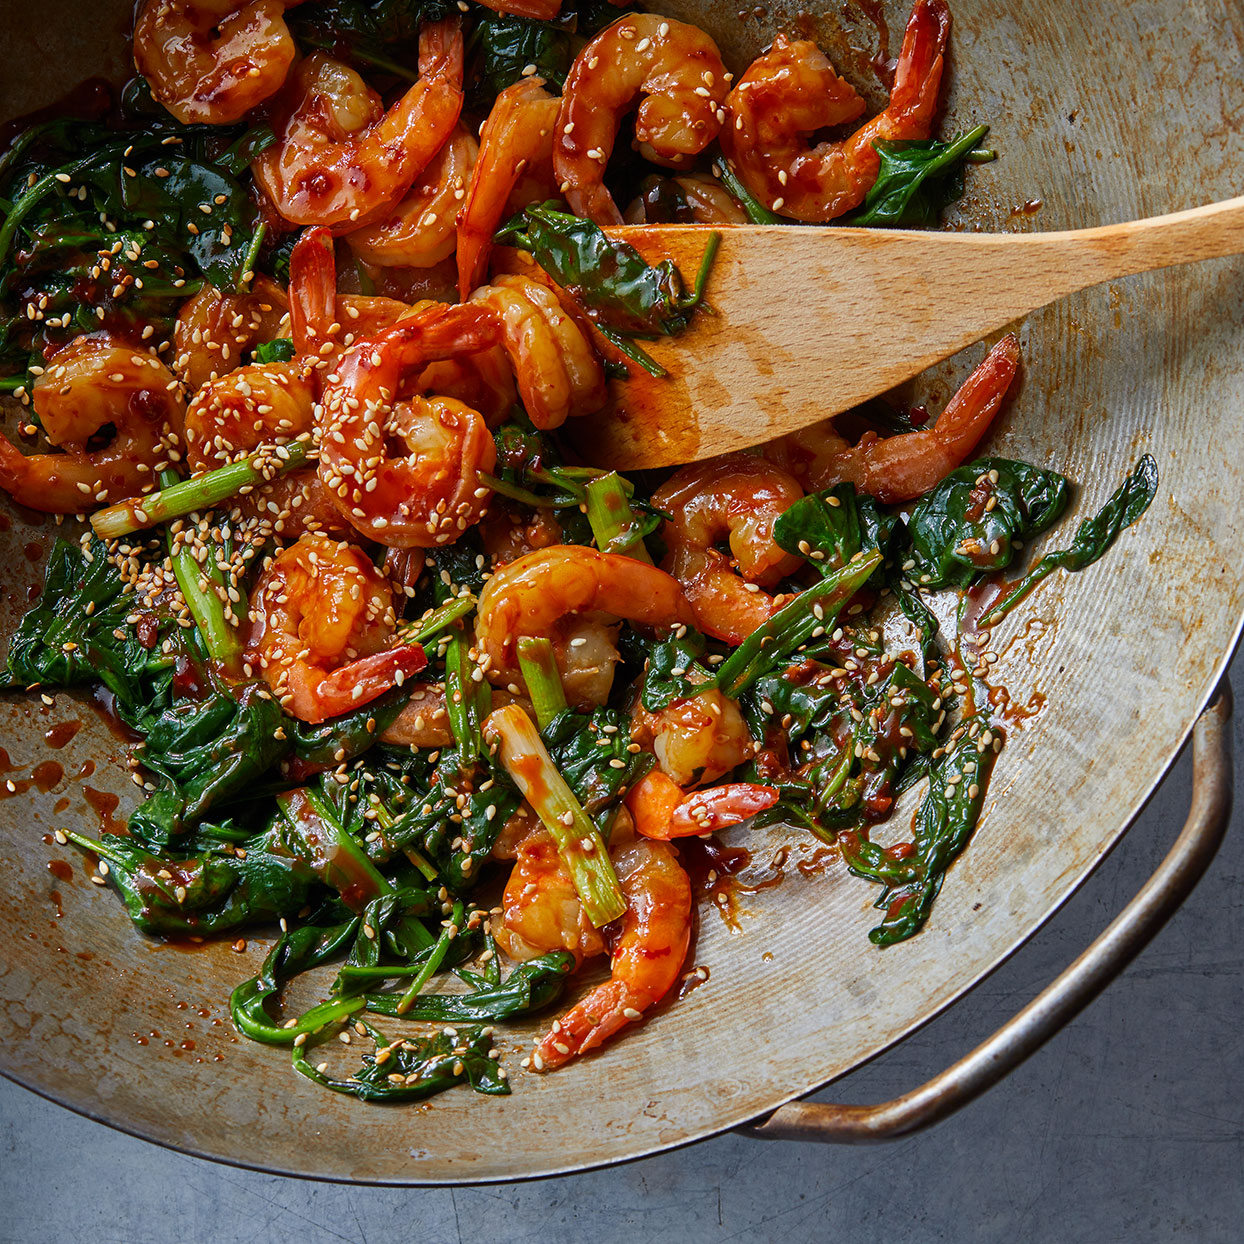 This stir-fry recipe calls for buying shrimp that's already peeled and deveined, which saves you about 10 minutes of prep time. Want this on the milder side? Swap ketchup for the chili-garlic sauce. Source: EatingWell Magazine, April 2020